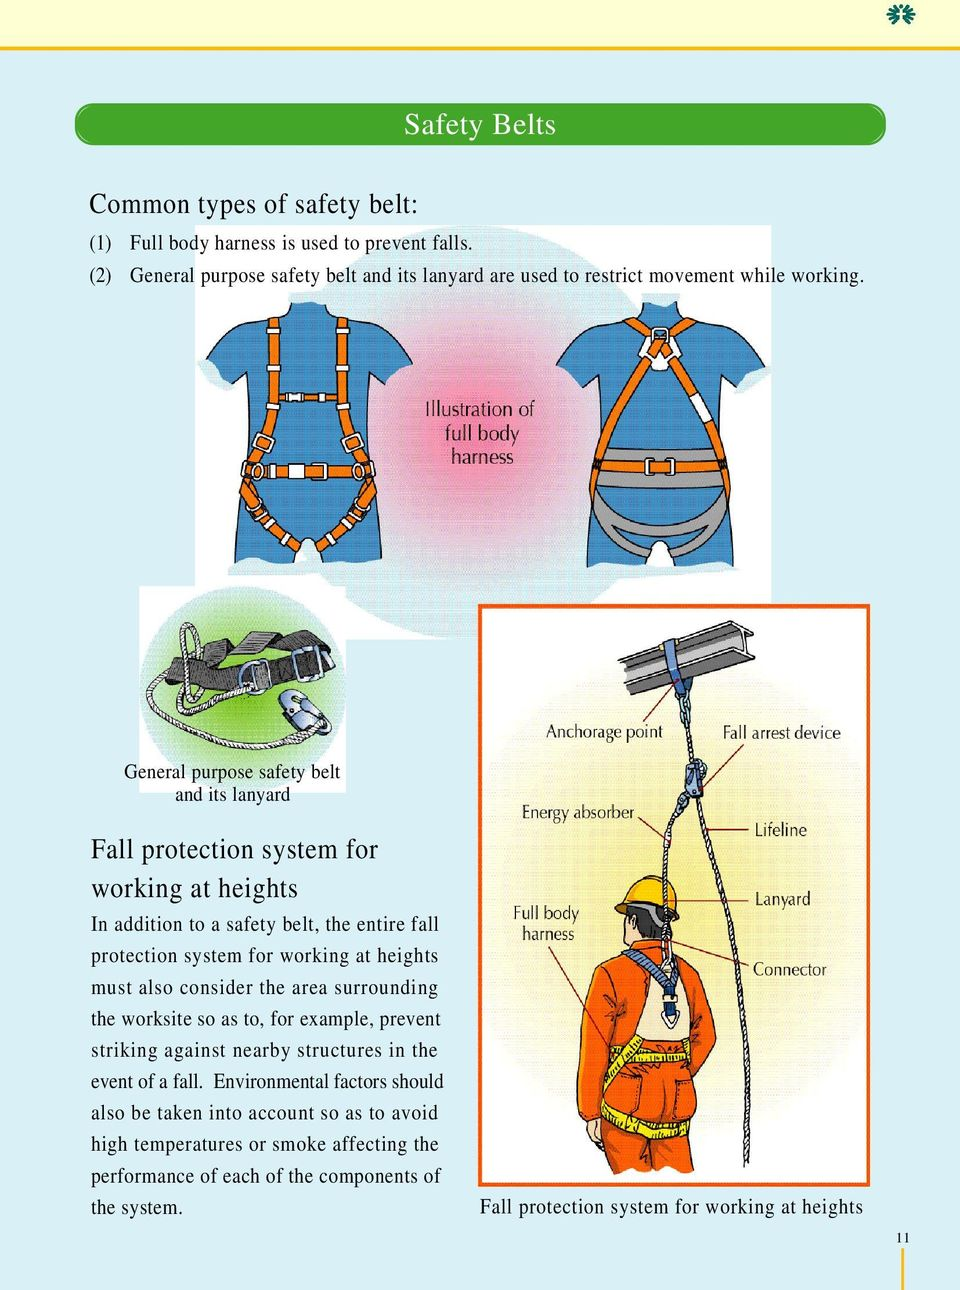 General purpose safety belt and its lanyard Fall protection system for working at heights In addition to a safety belt, the entire fall protection system for working at heights